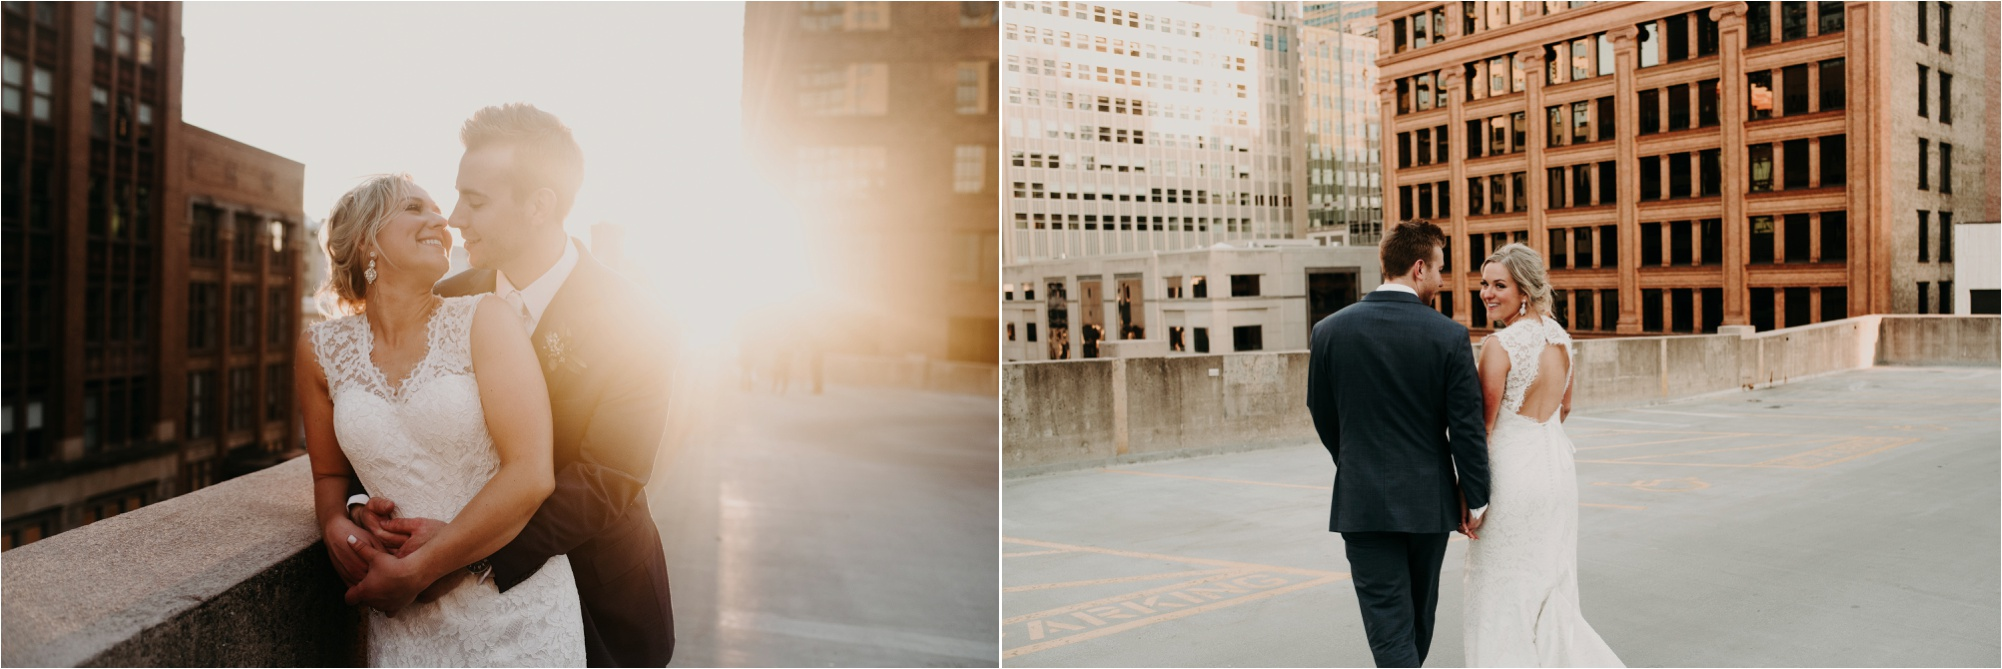 downtown minneapolis bride and groom sunset photos minneapolis wedding photographer